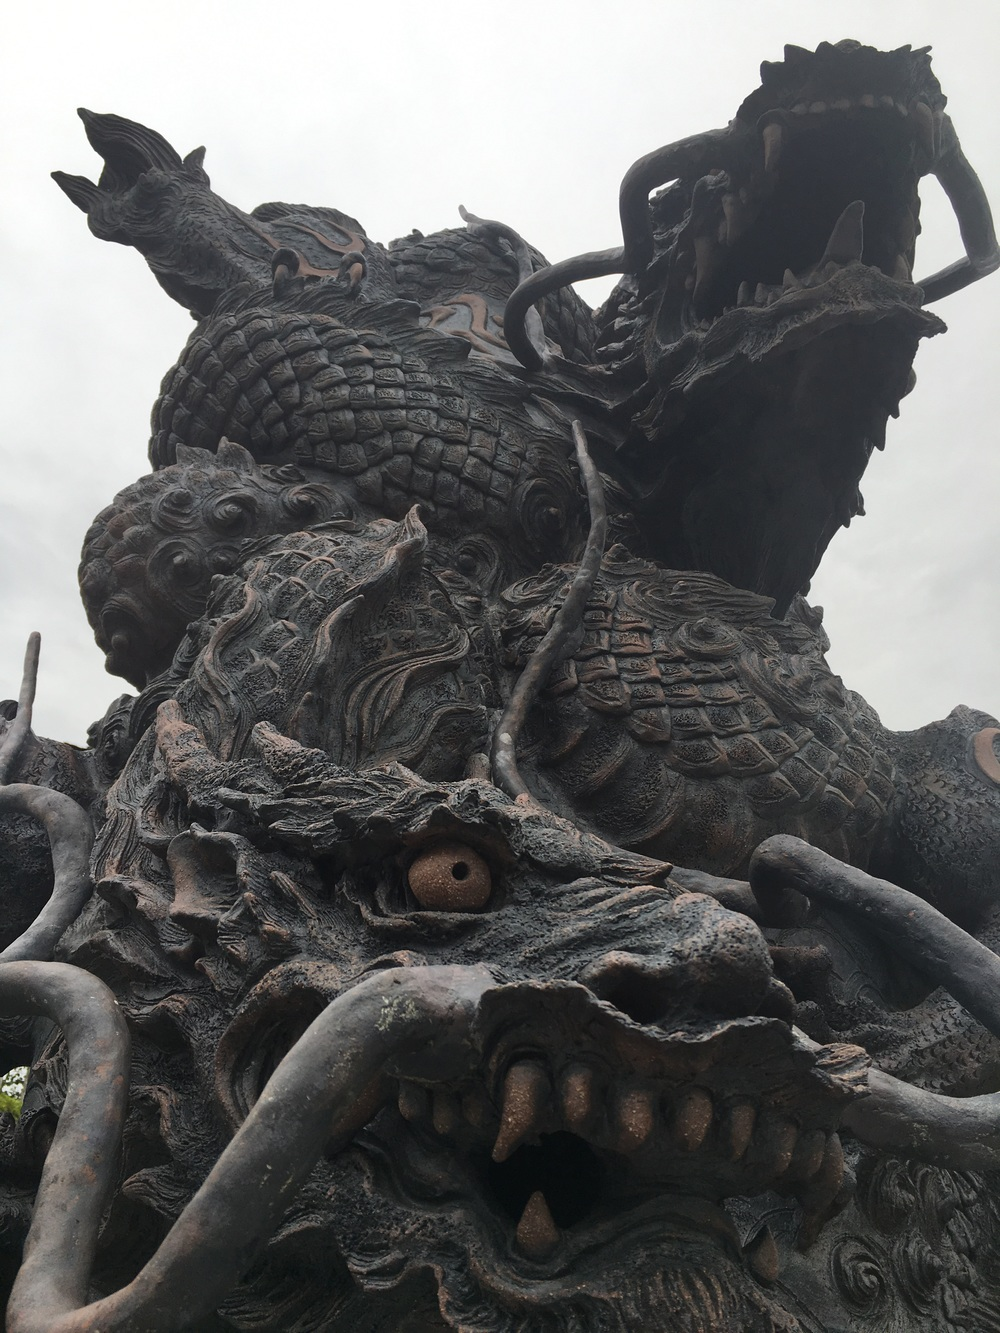 I dont have a photo of the love stone thing, so here's an awesome dragon instead